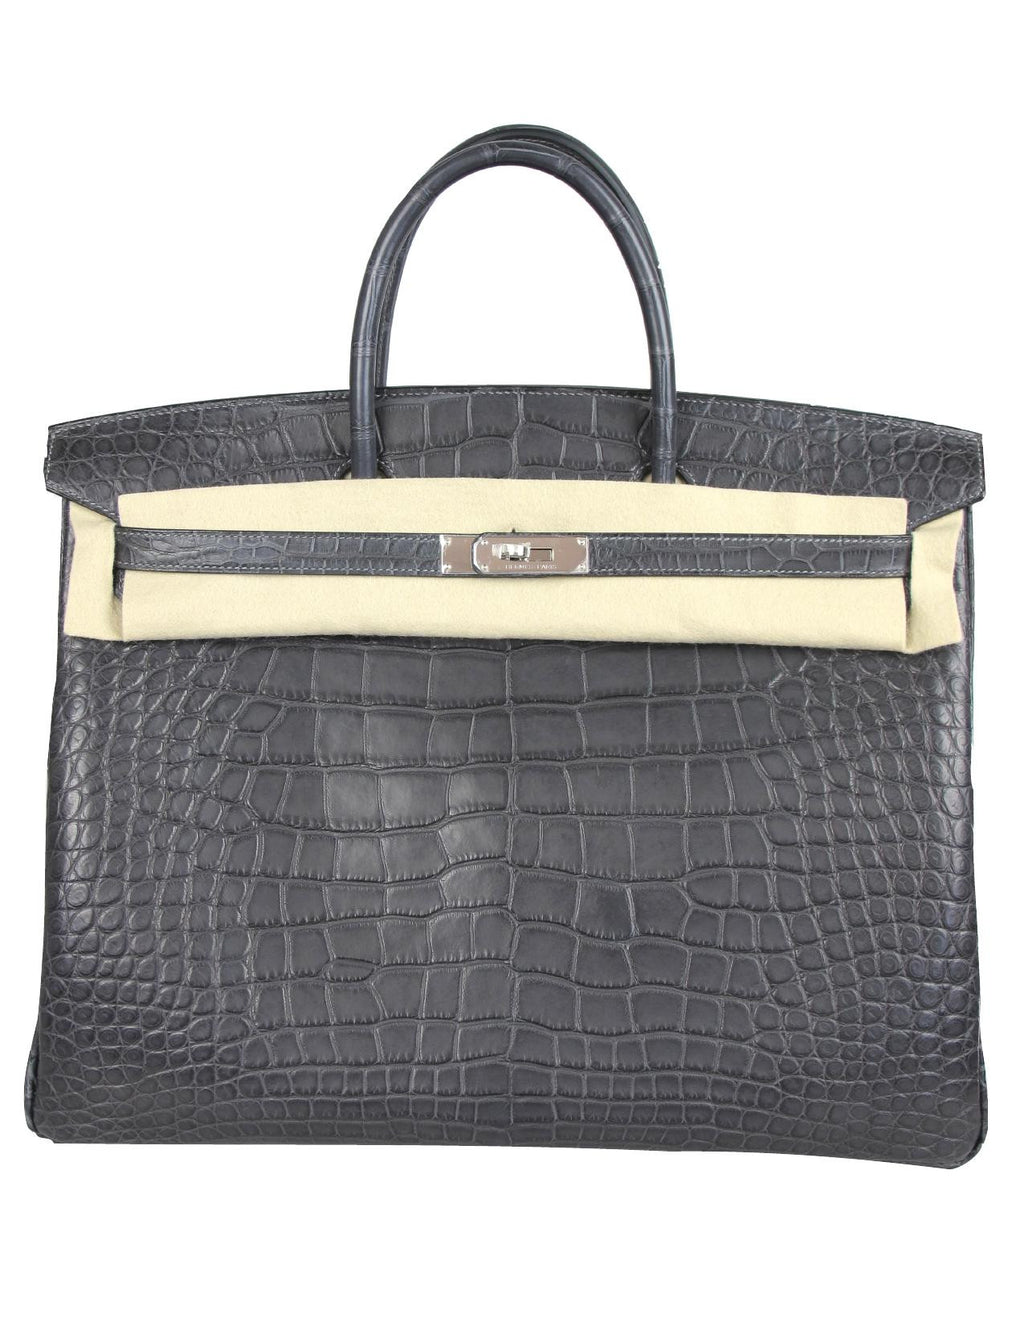 HERMES 40cm Birkin in Graphite Matte Alligator with Palladium Hardware